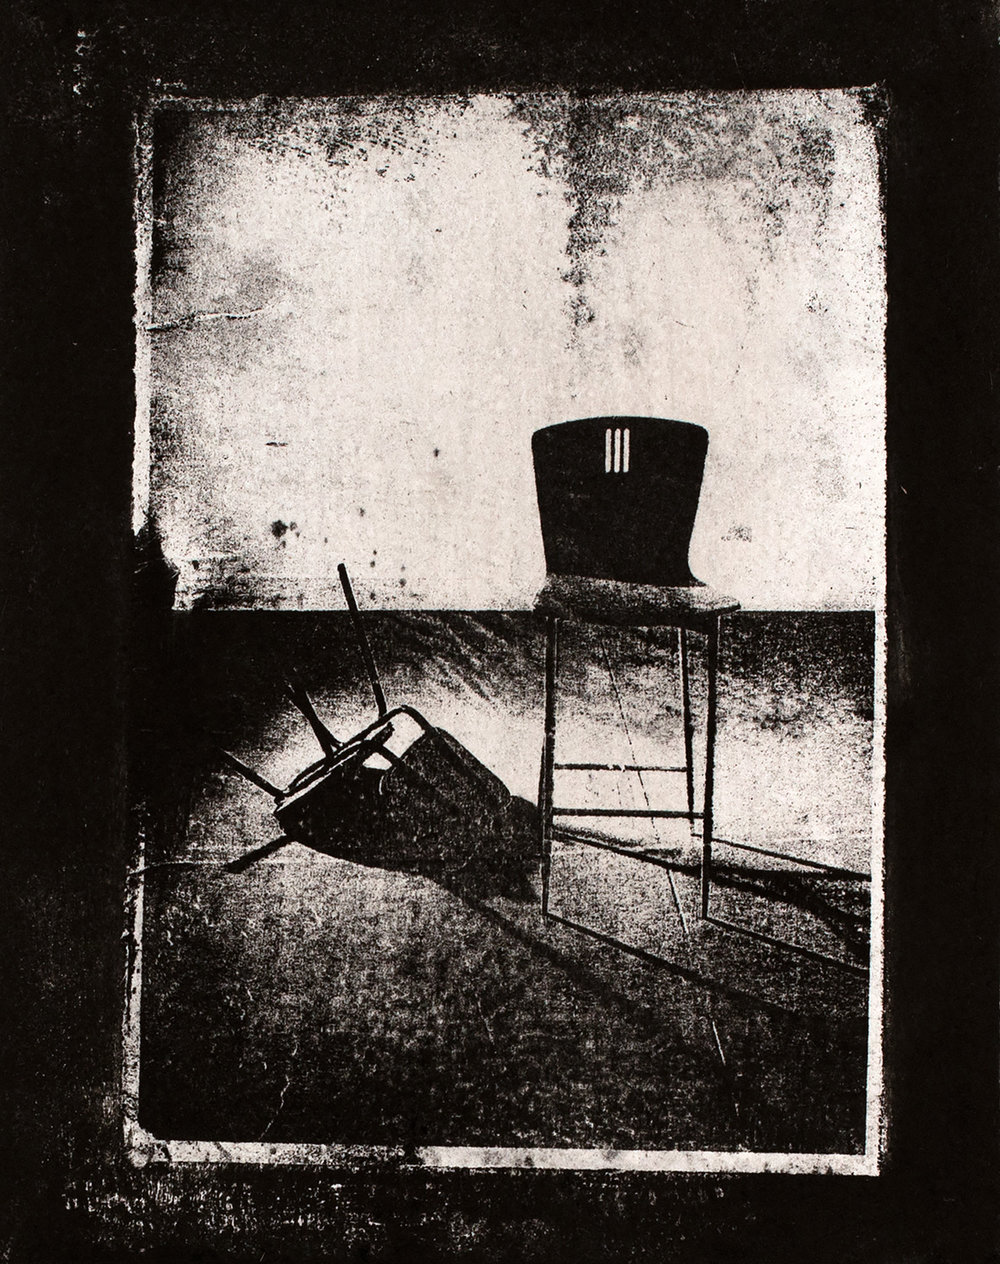 Chairs IV , 2016, paper lithograph on Fabriano Artistico 300 gsm, 42 x 29.7 cm